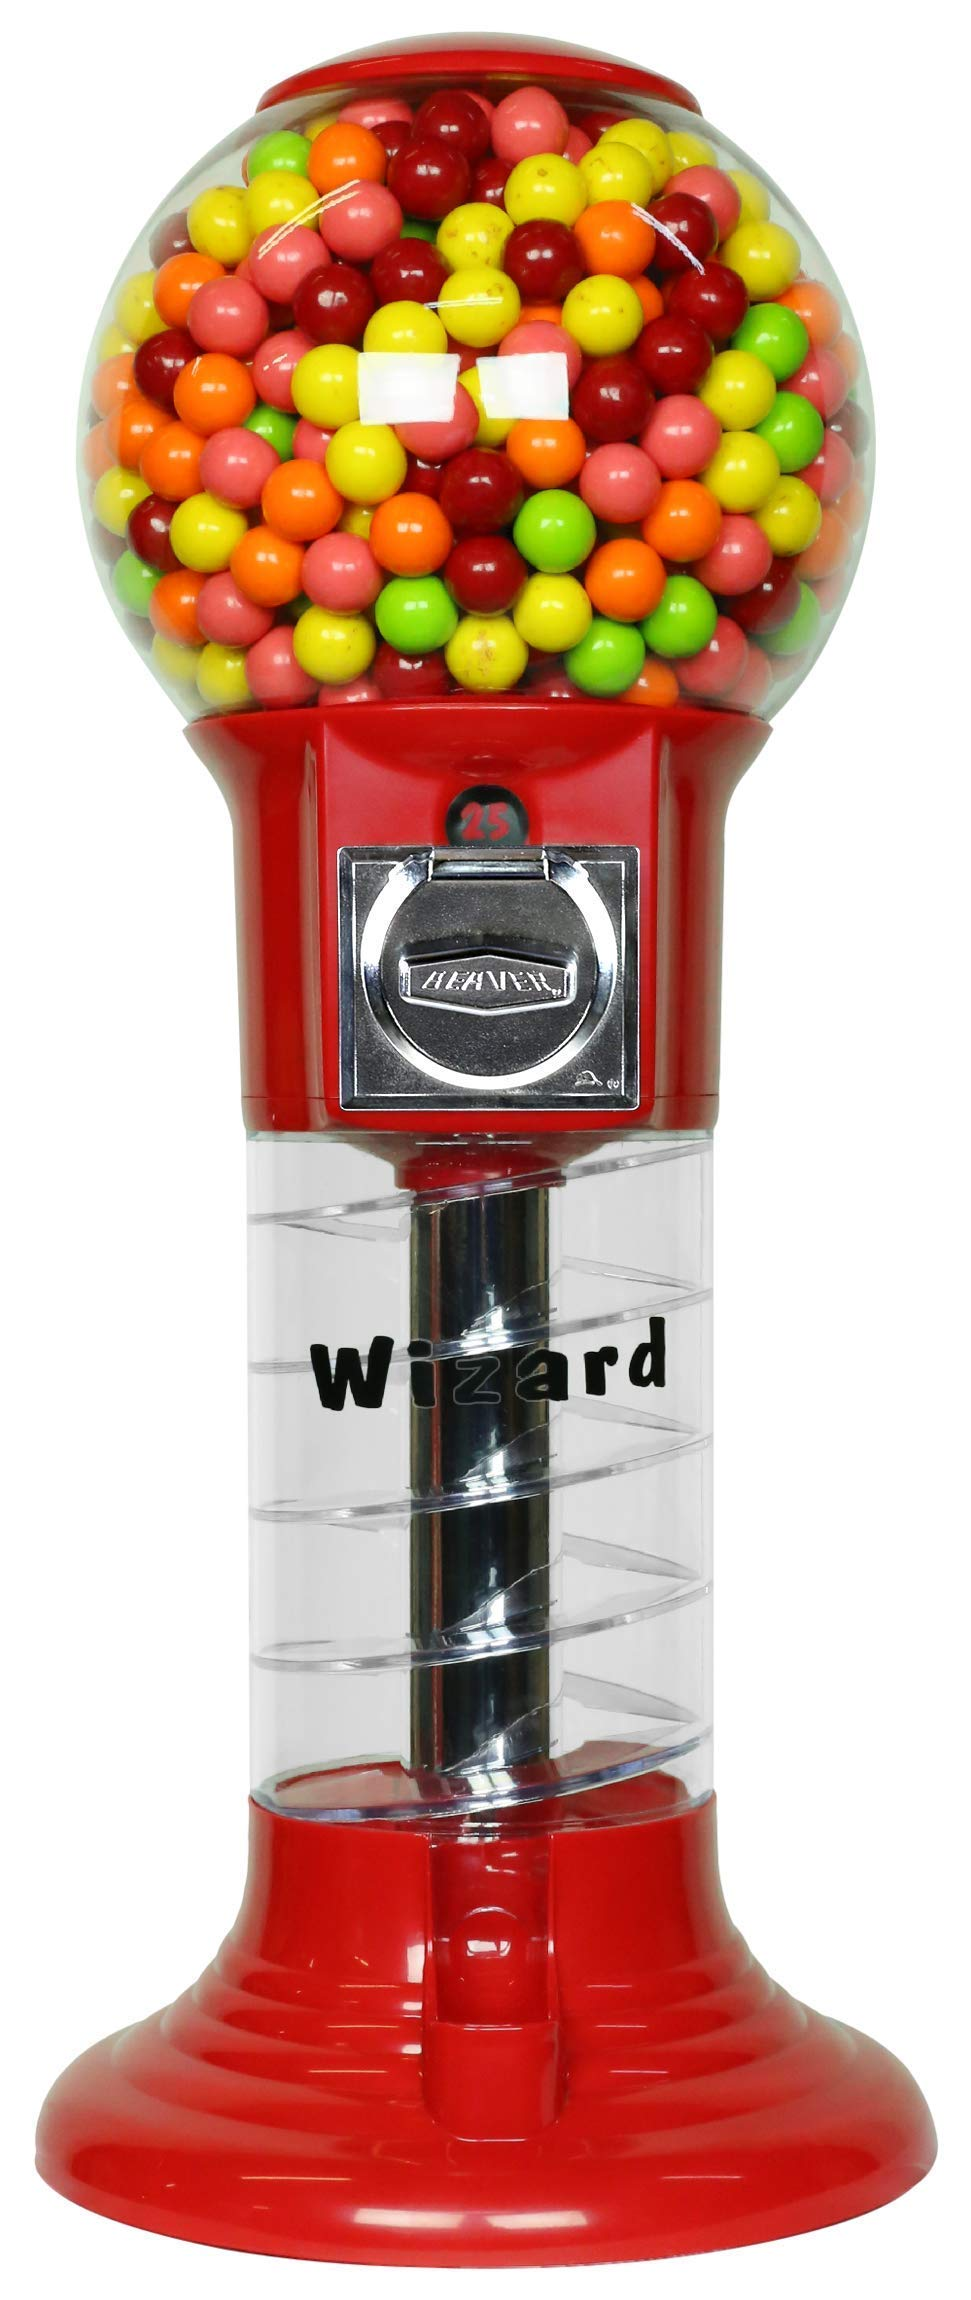 Spiral Gumball Machine Lil Wizard 27 inch - set up for $0.25 - Gumballs 1 inch - Toys in Round Capsules - 1'' Bouncy Balls 25 mm - Red Vending Gum Machine - Great Gift for Kids